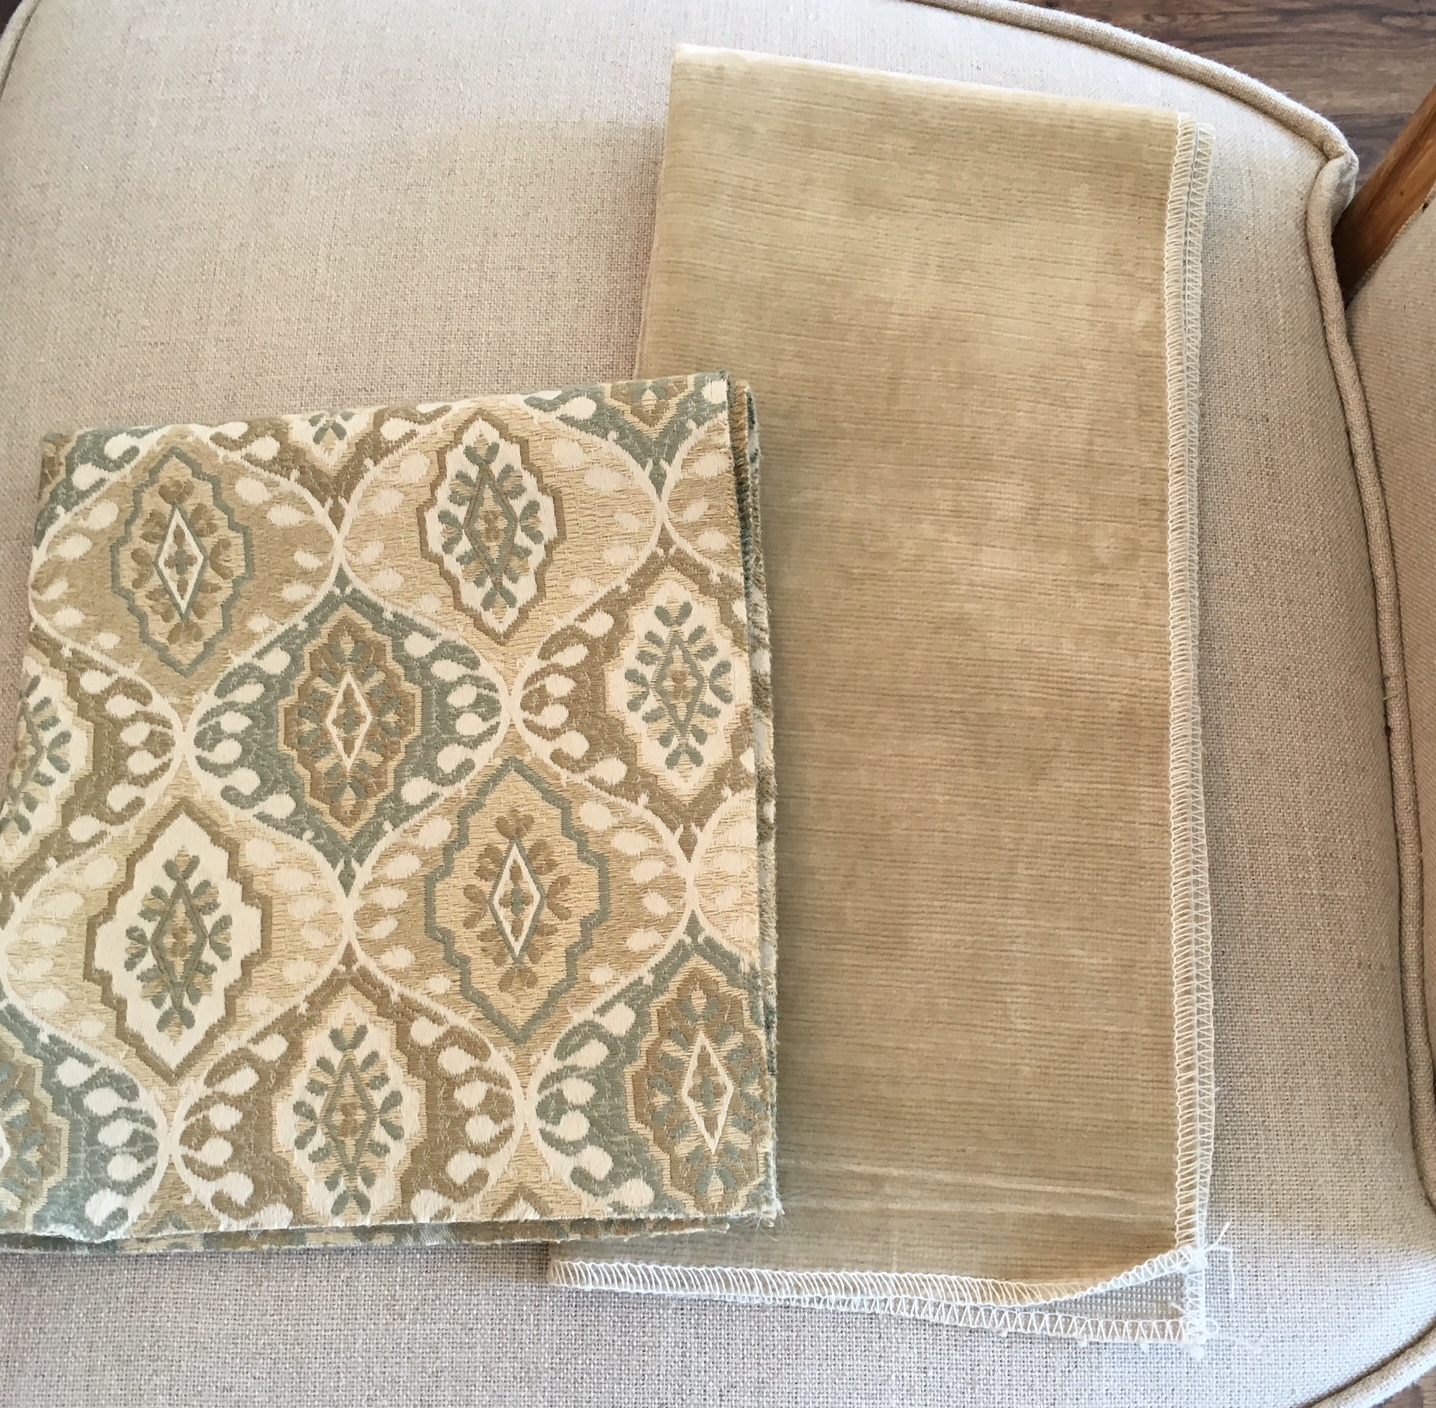 Hearth Room Fabrics - Patterned Chairs and Taupe Velvet Sofa Fabric